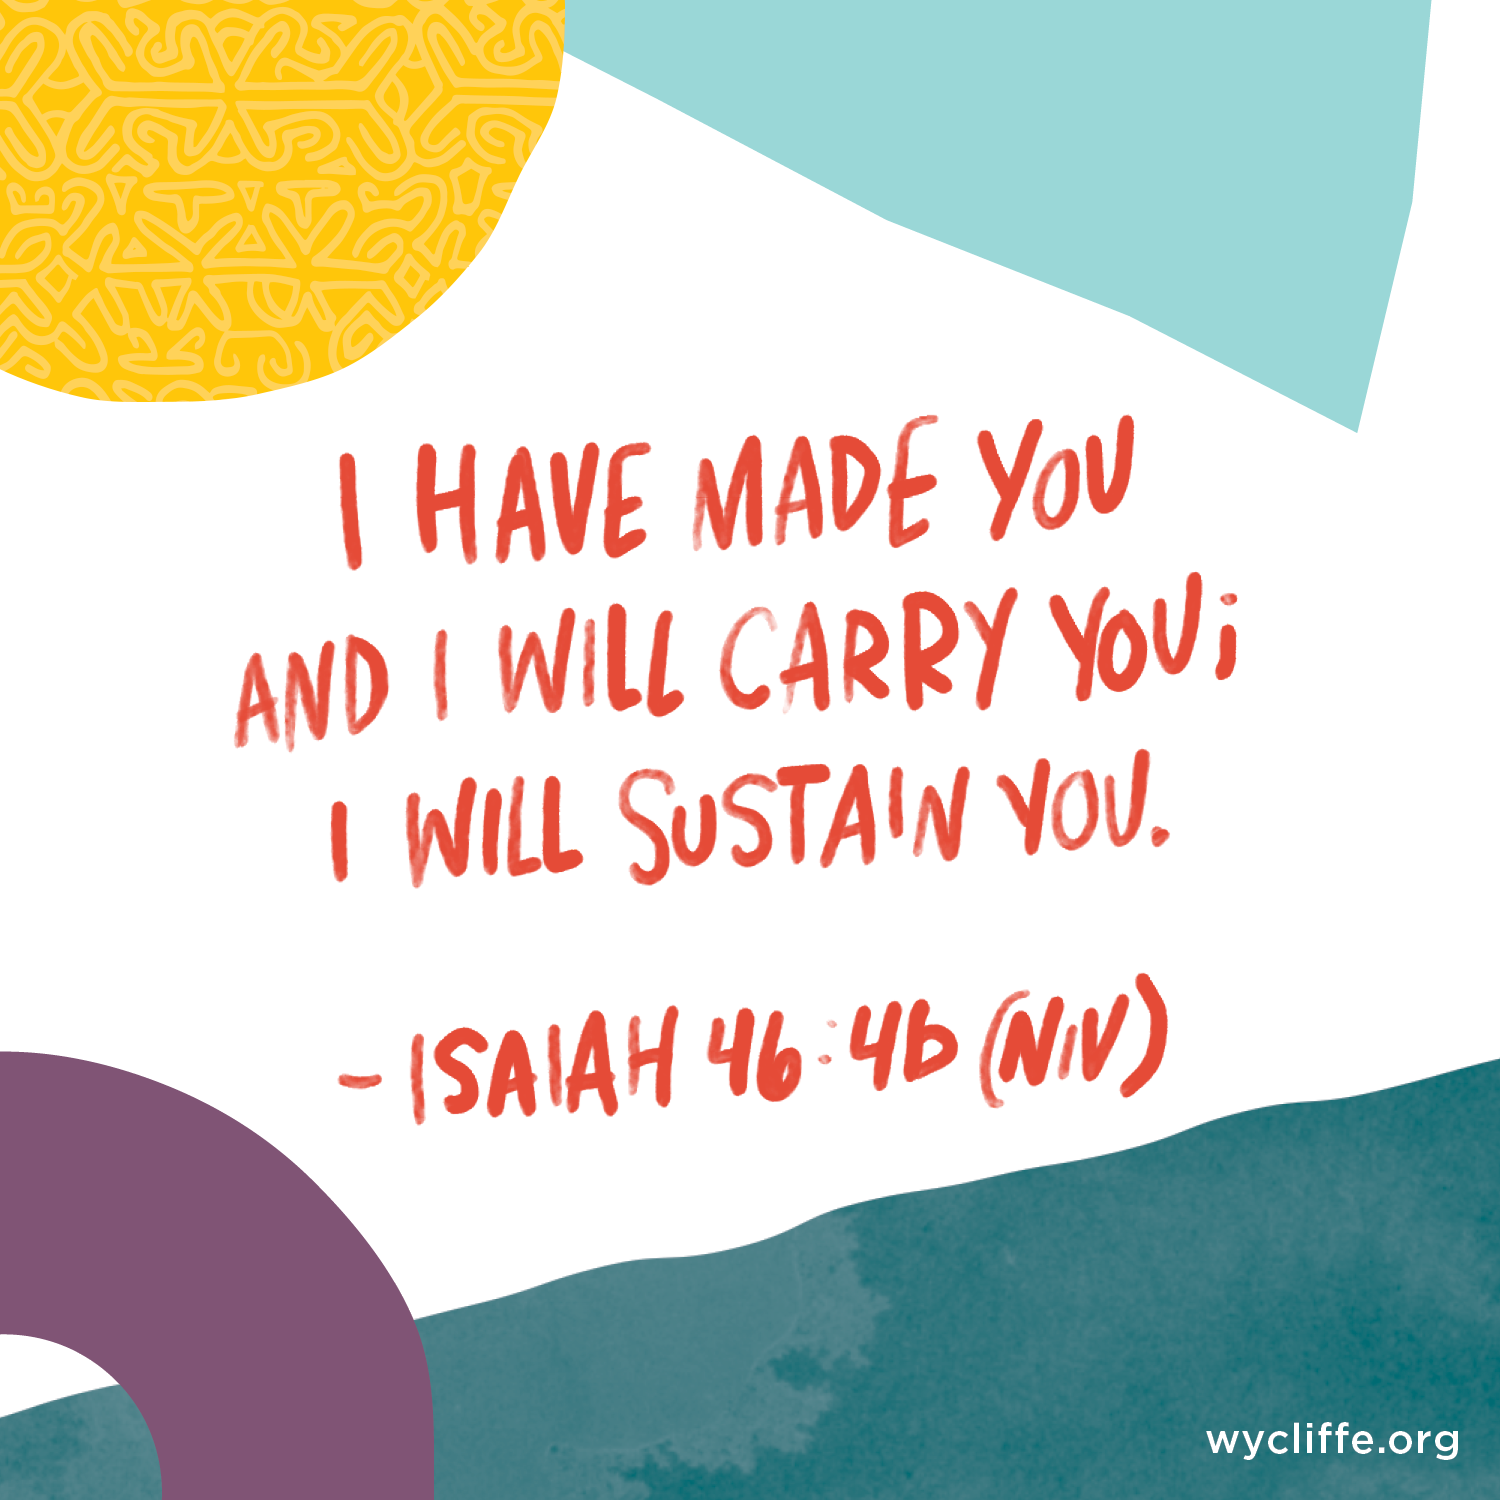 I have made you and I will carry you;             I will sustain you. - Isaiah 46:4b (NIV)